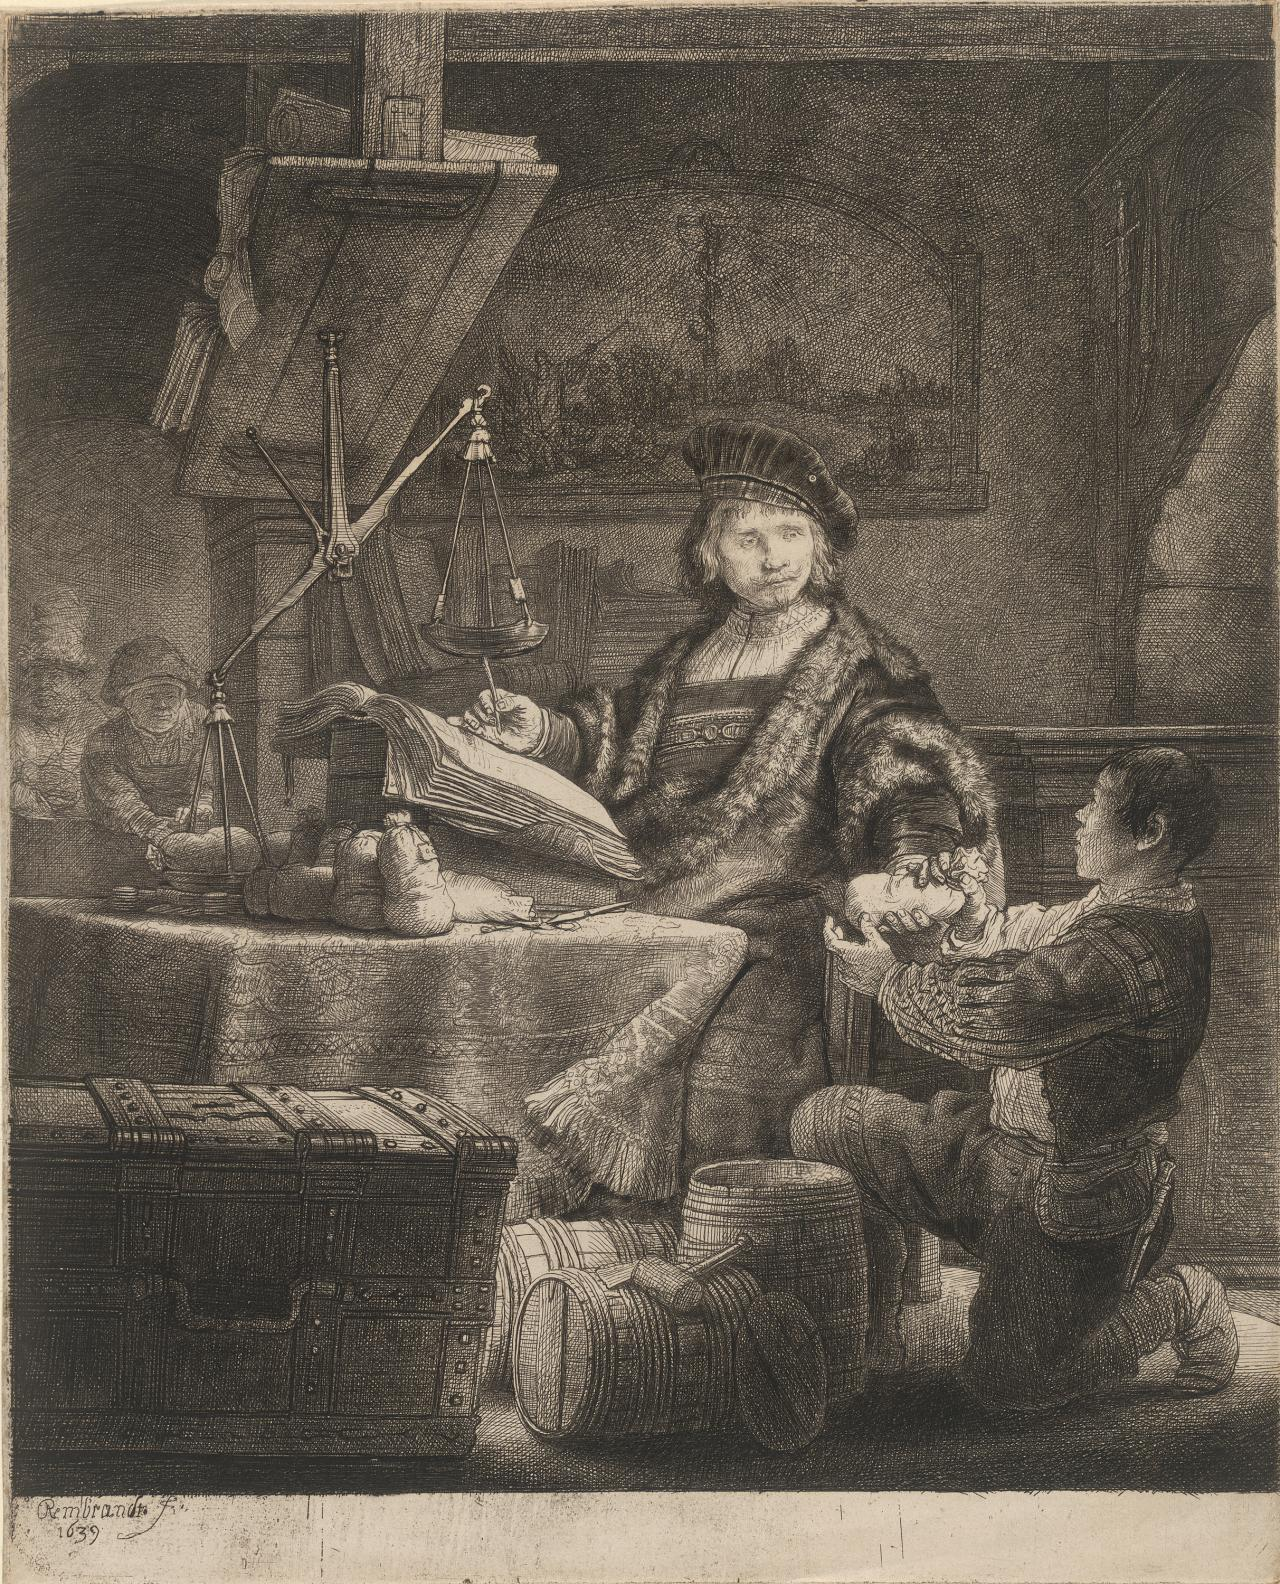 Jan Uytenbogaert,Receiver-General (The Gold-Weigher)